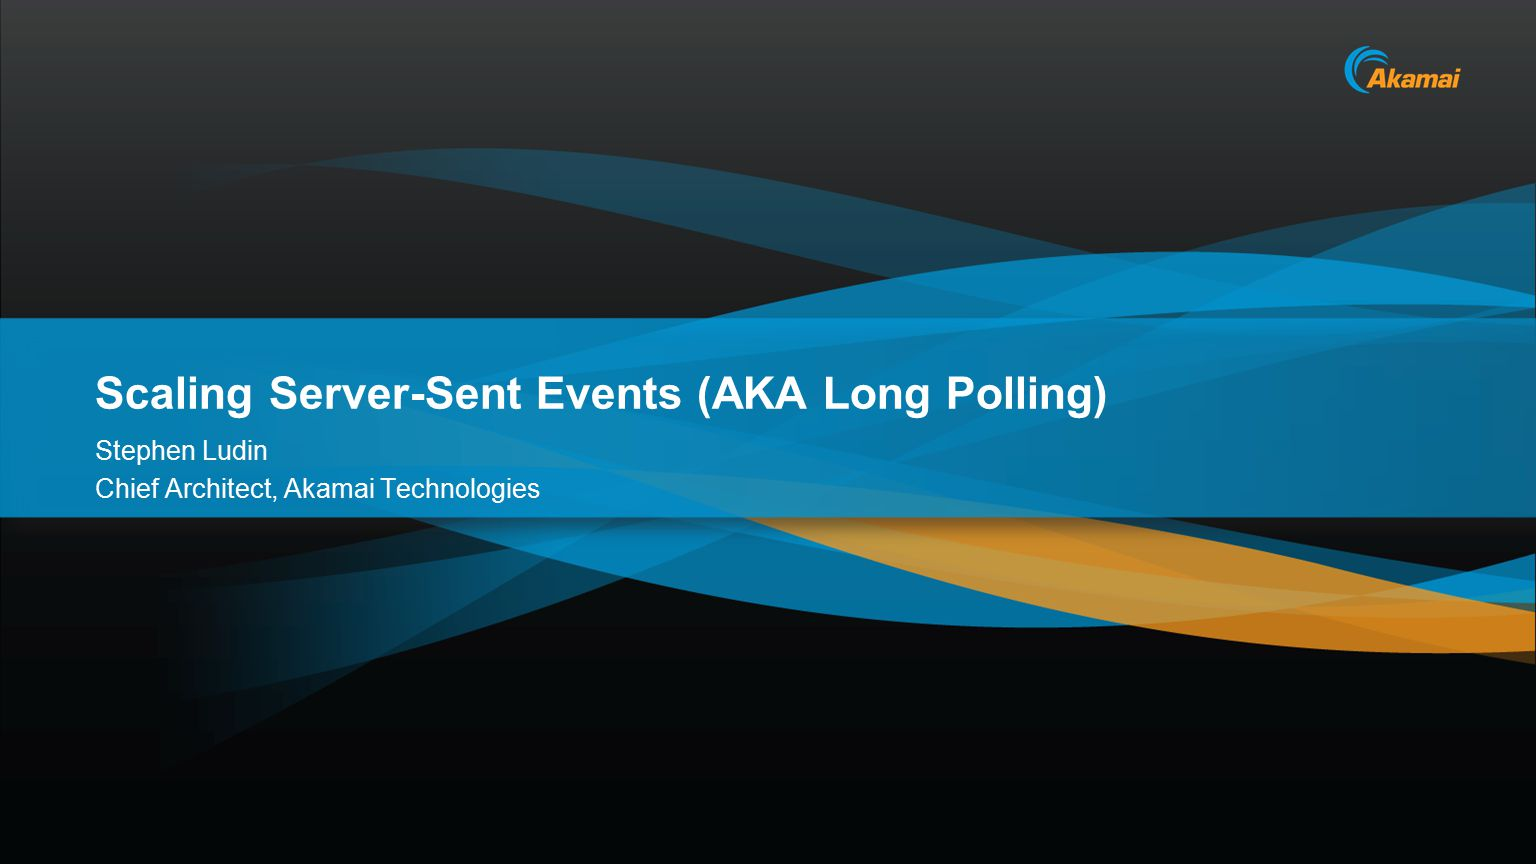 Scaling Server-Sent Events (AKA Long Polling)